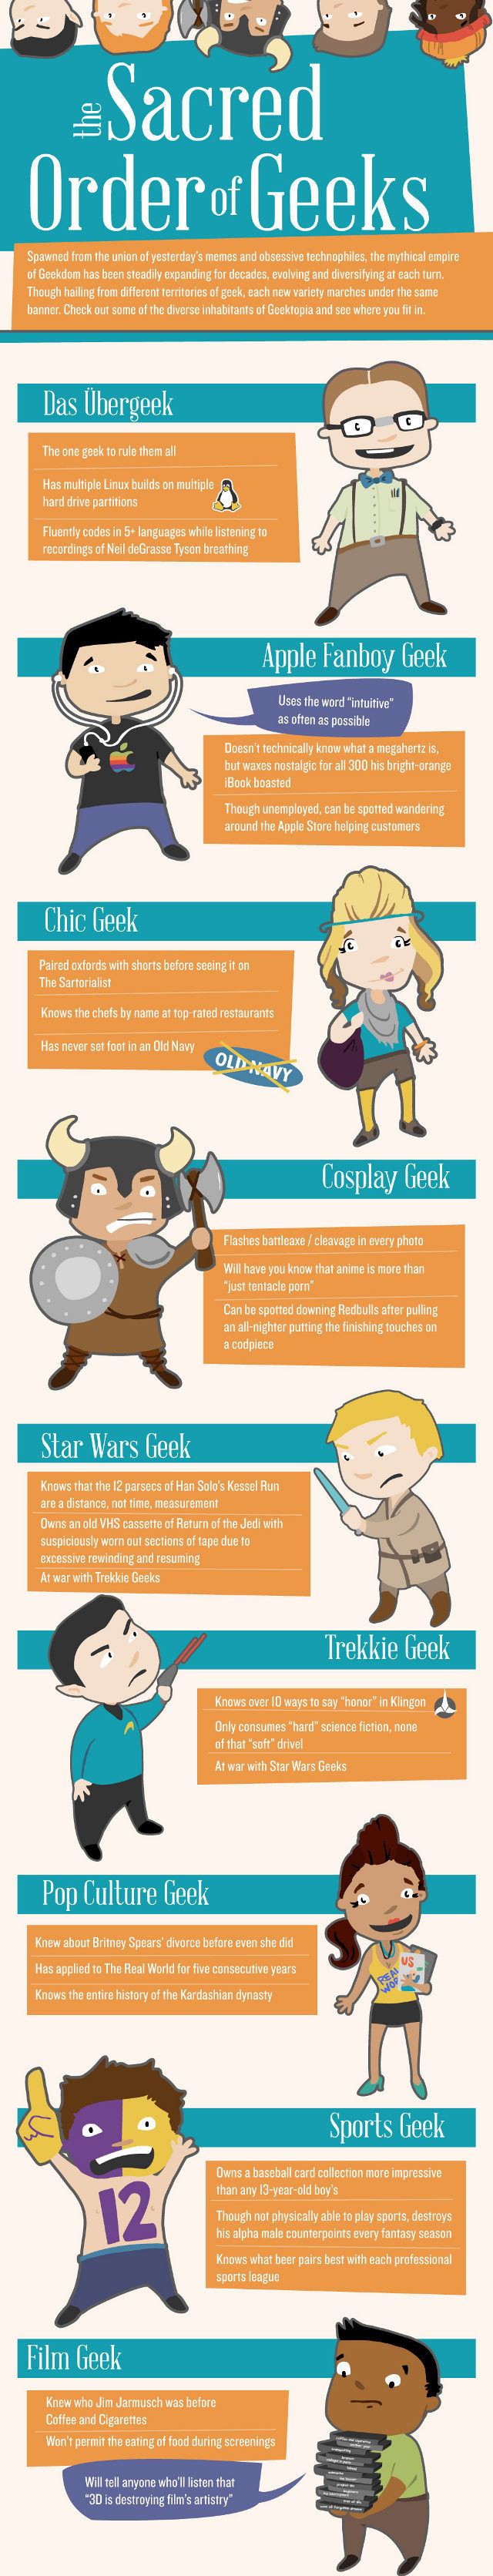 The different types of geeks